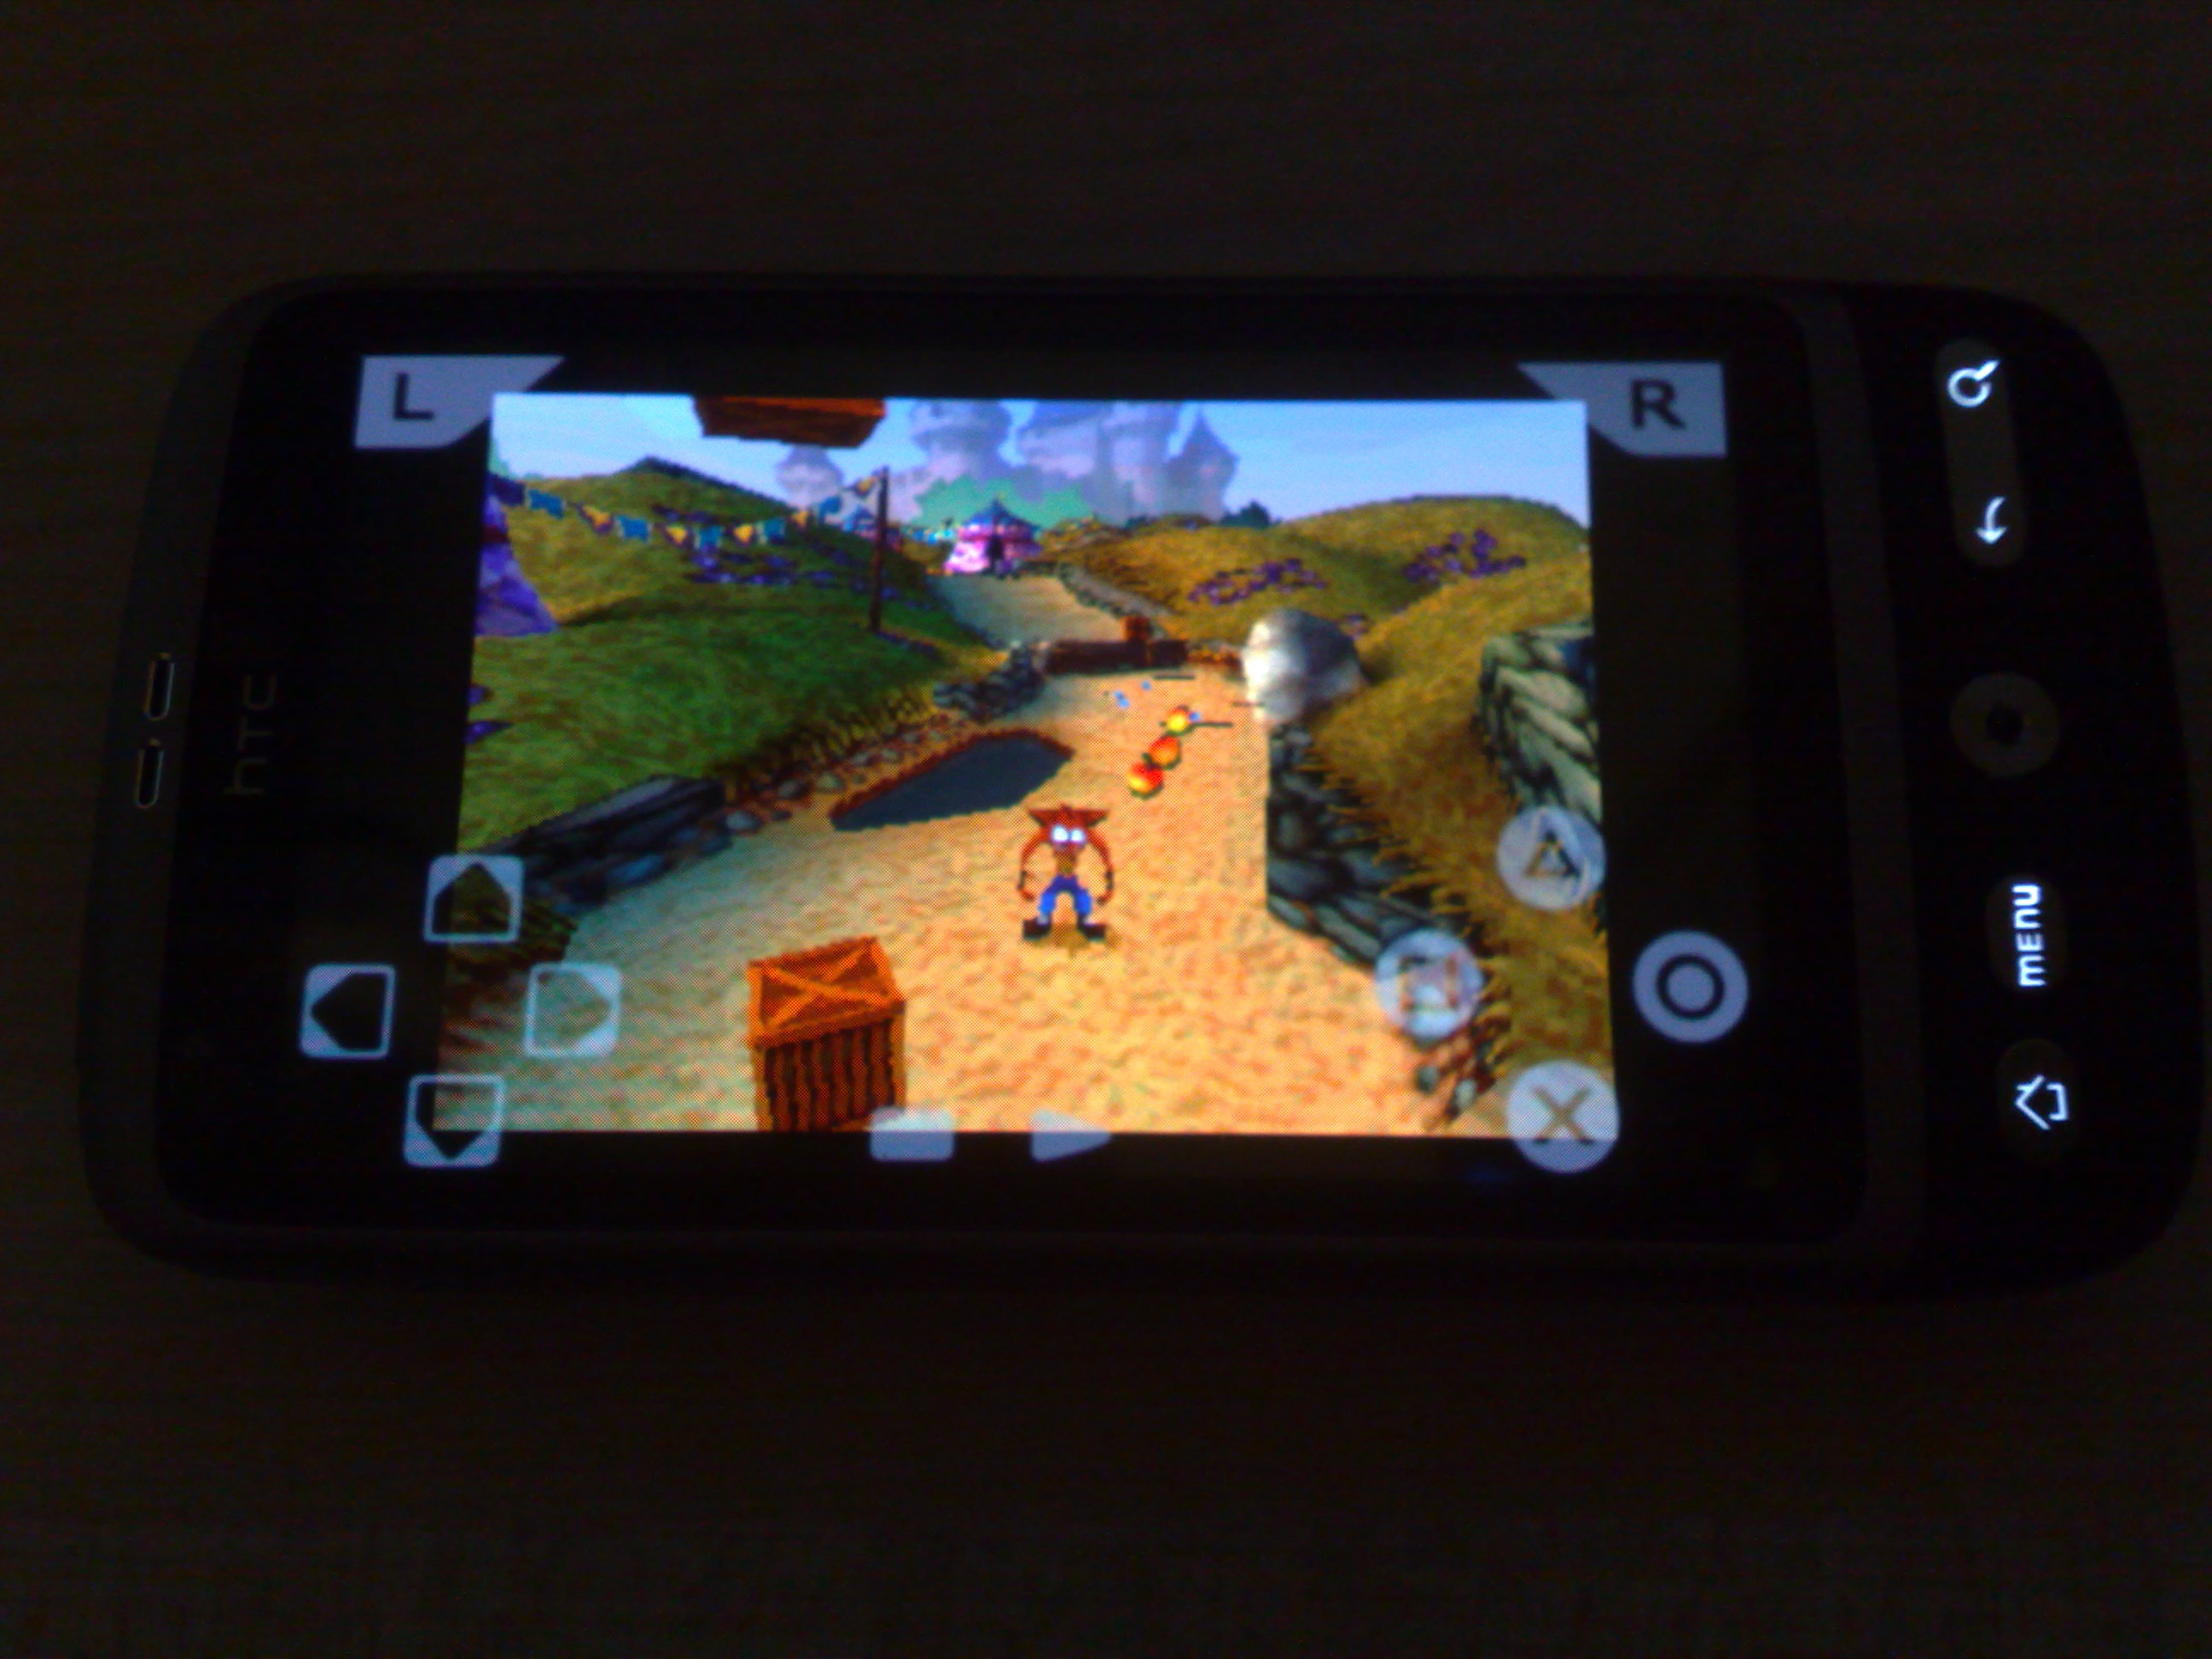 play playstation games on android digiex